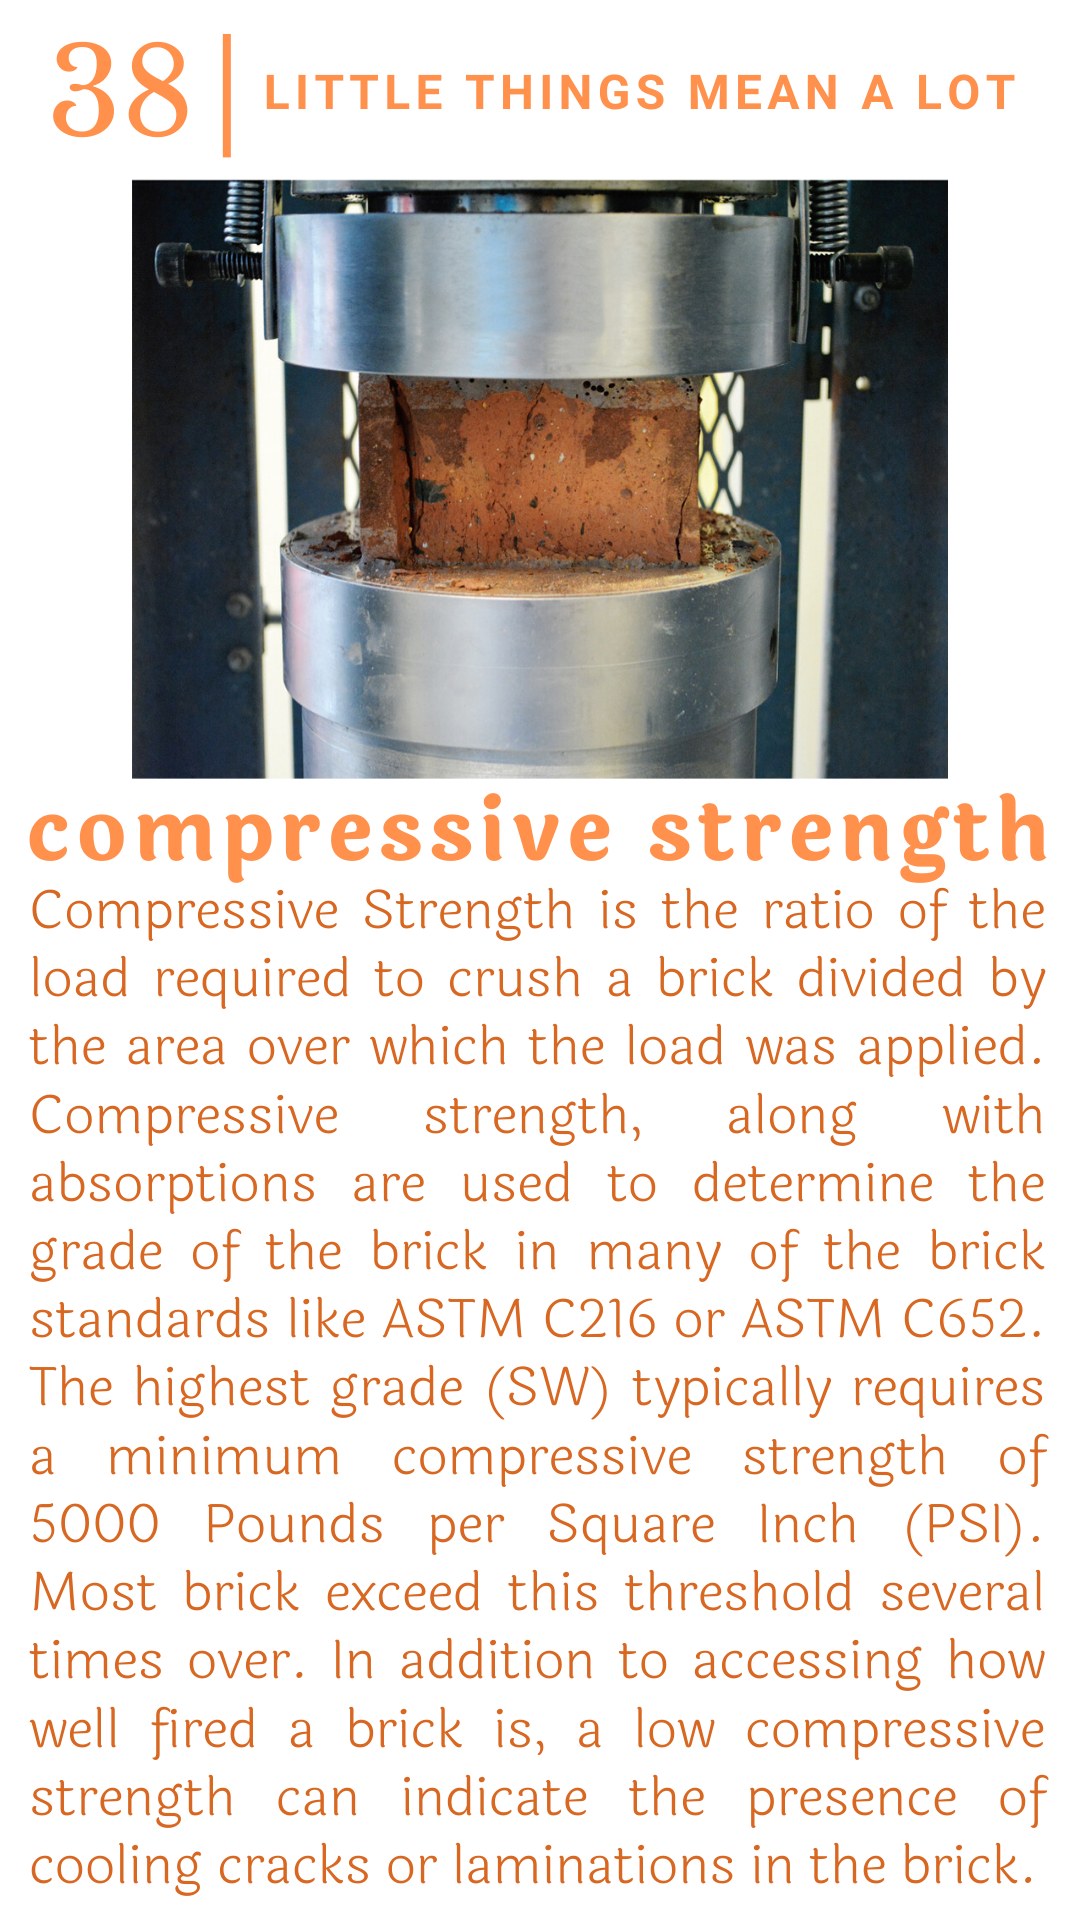 Compressive Strength is this week's Little Things Mean A Lot term. See all terms on our Facebook page: https://www.facebook.com/pg/NBRCClemson/photos/?tab=album&album_id=2639884209571453